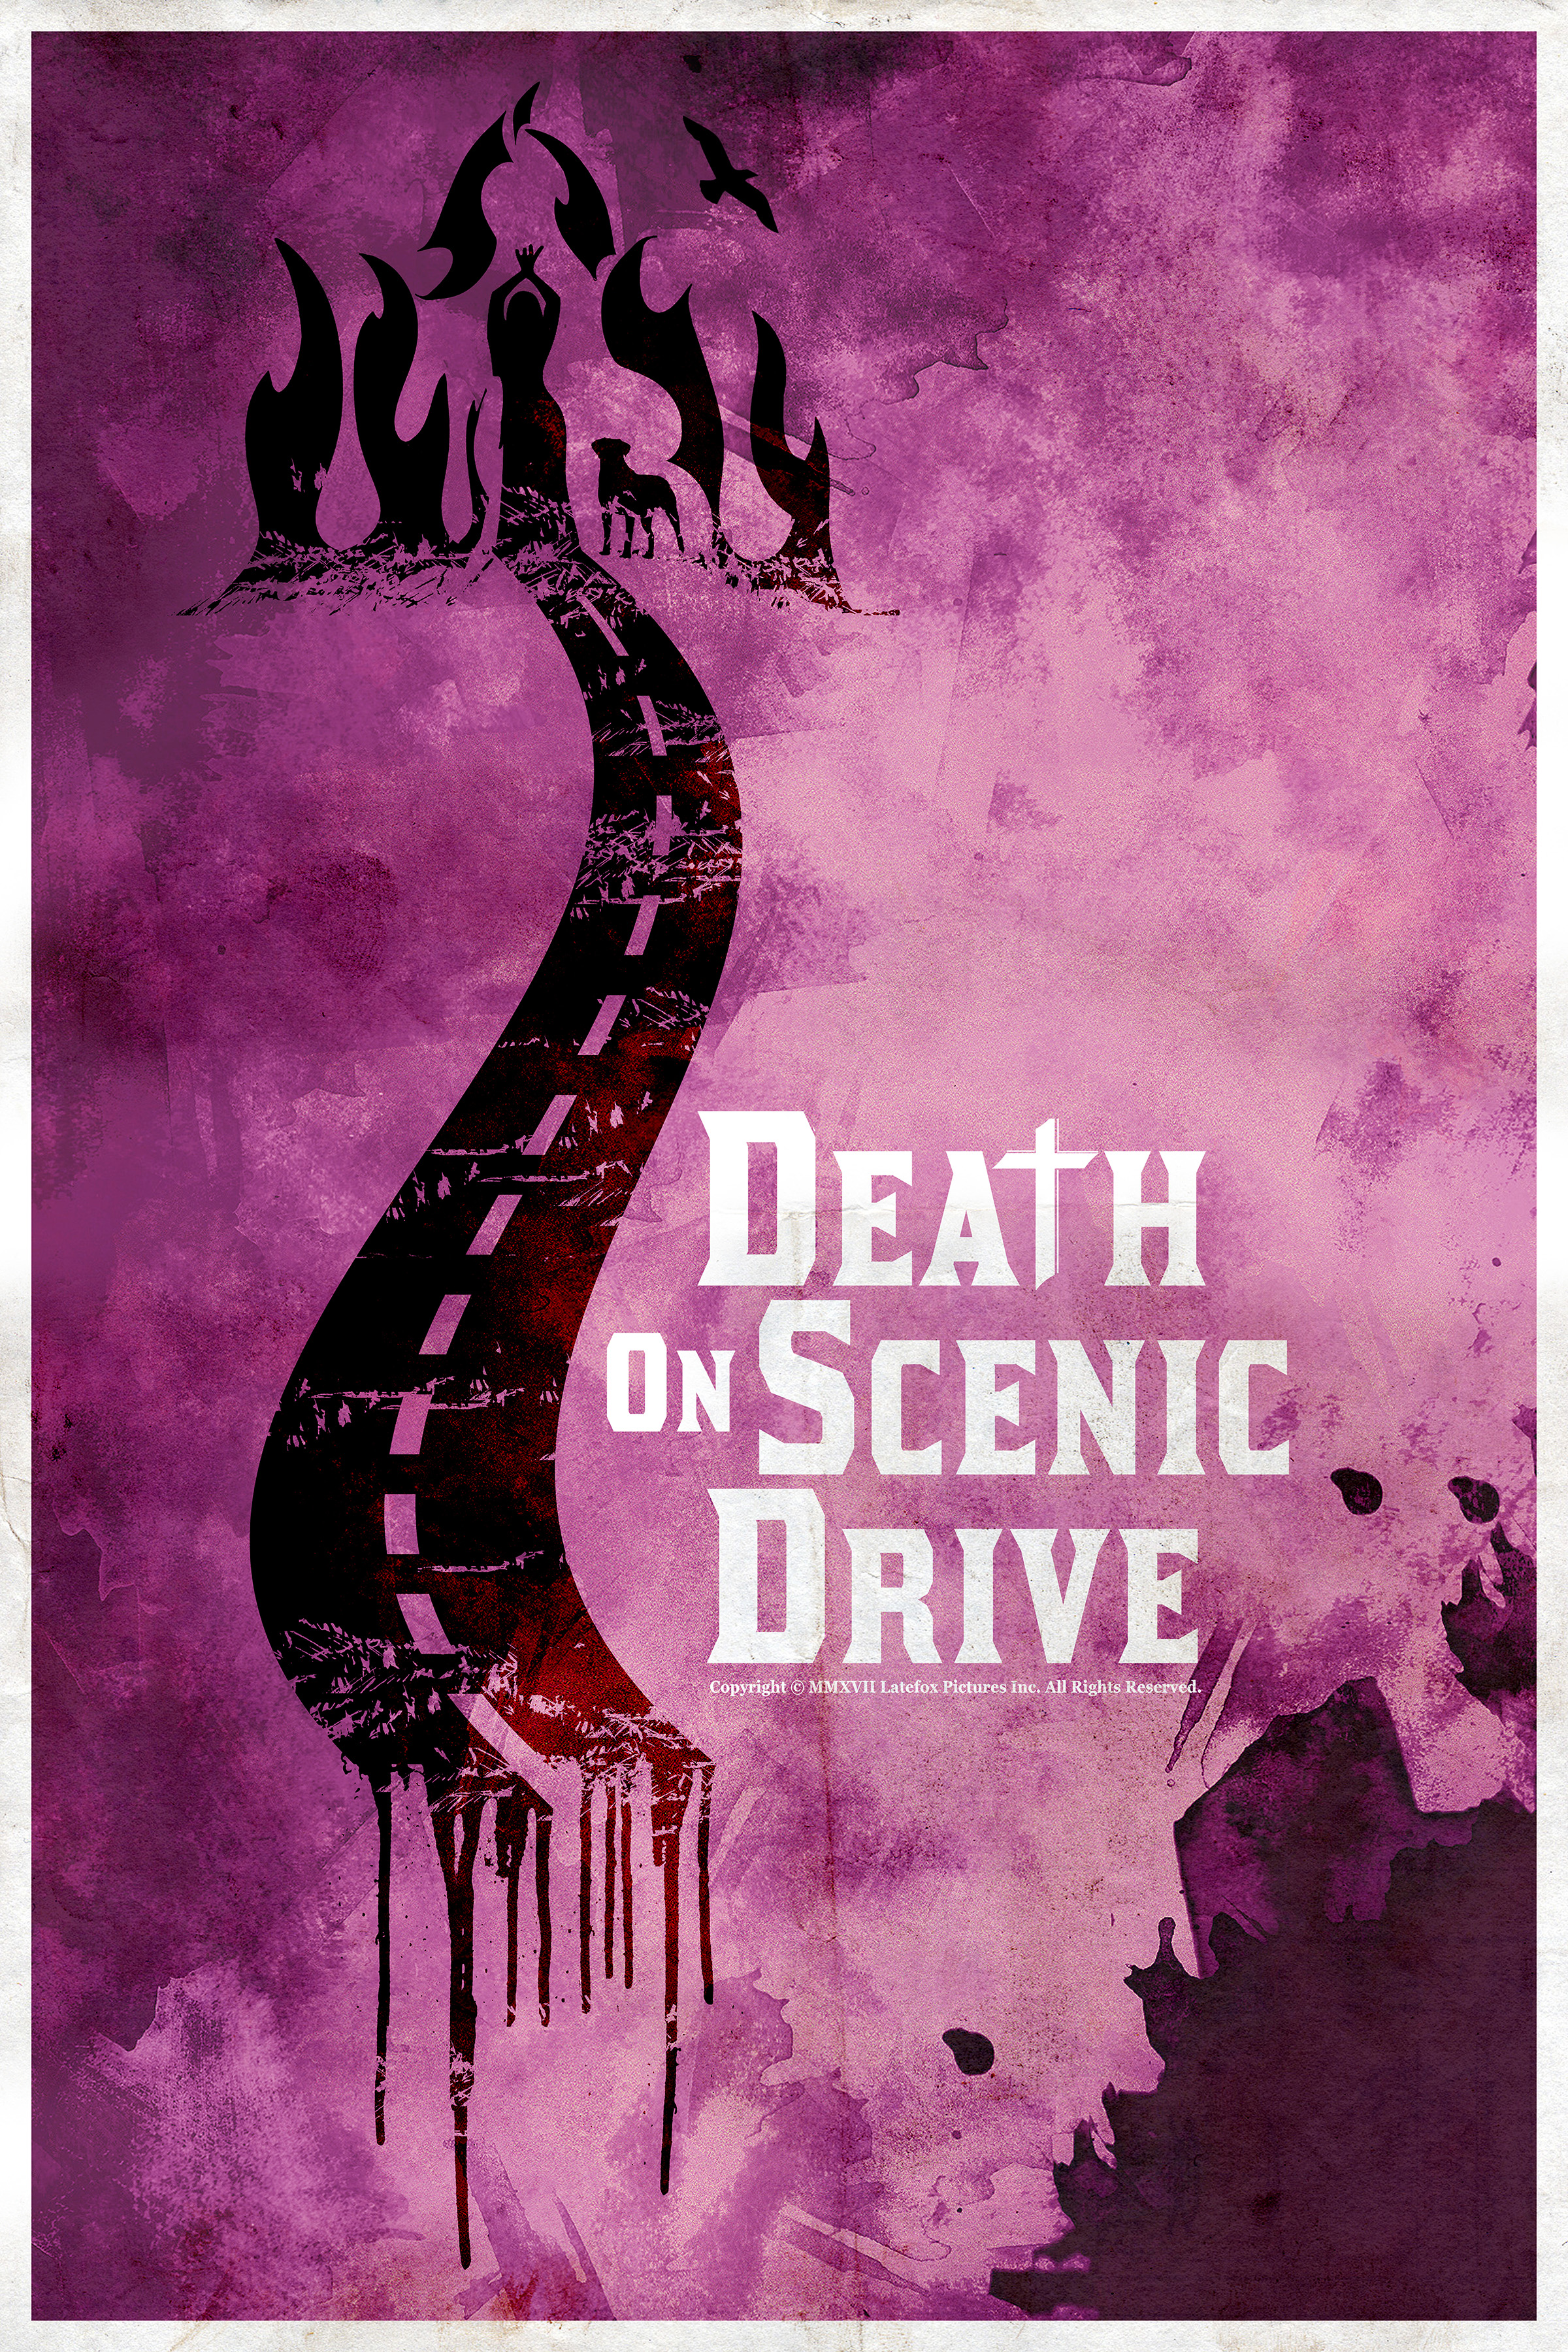 death-on-scenic-drive-teaser-title-poster